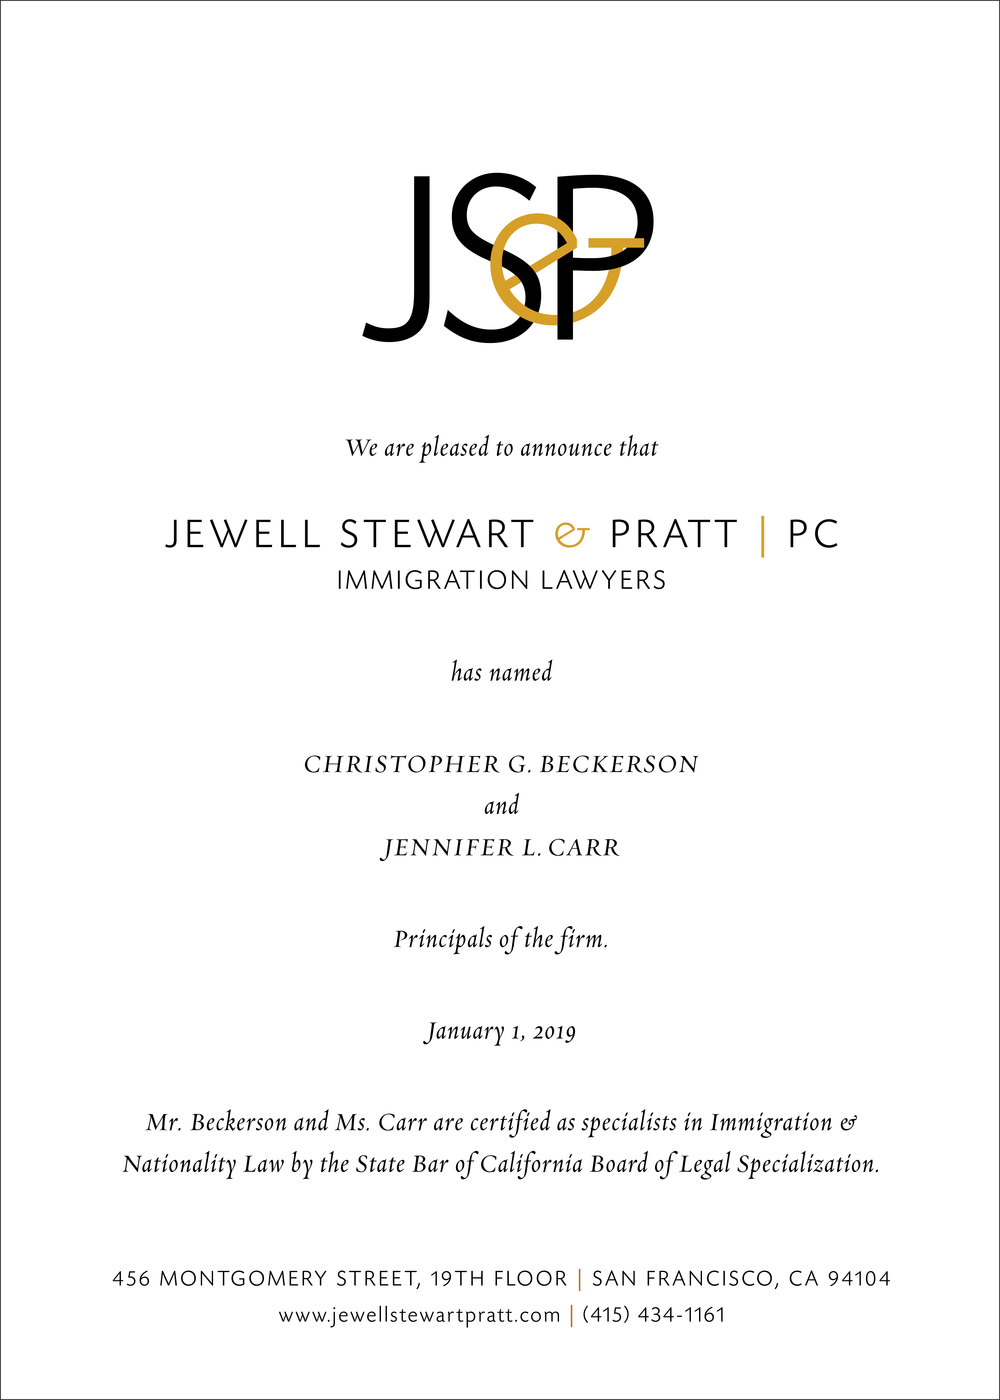 2019-01 - JSP new partner announcement.png